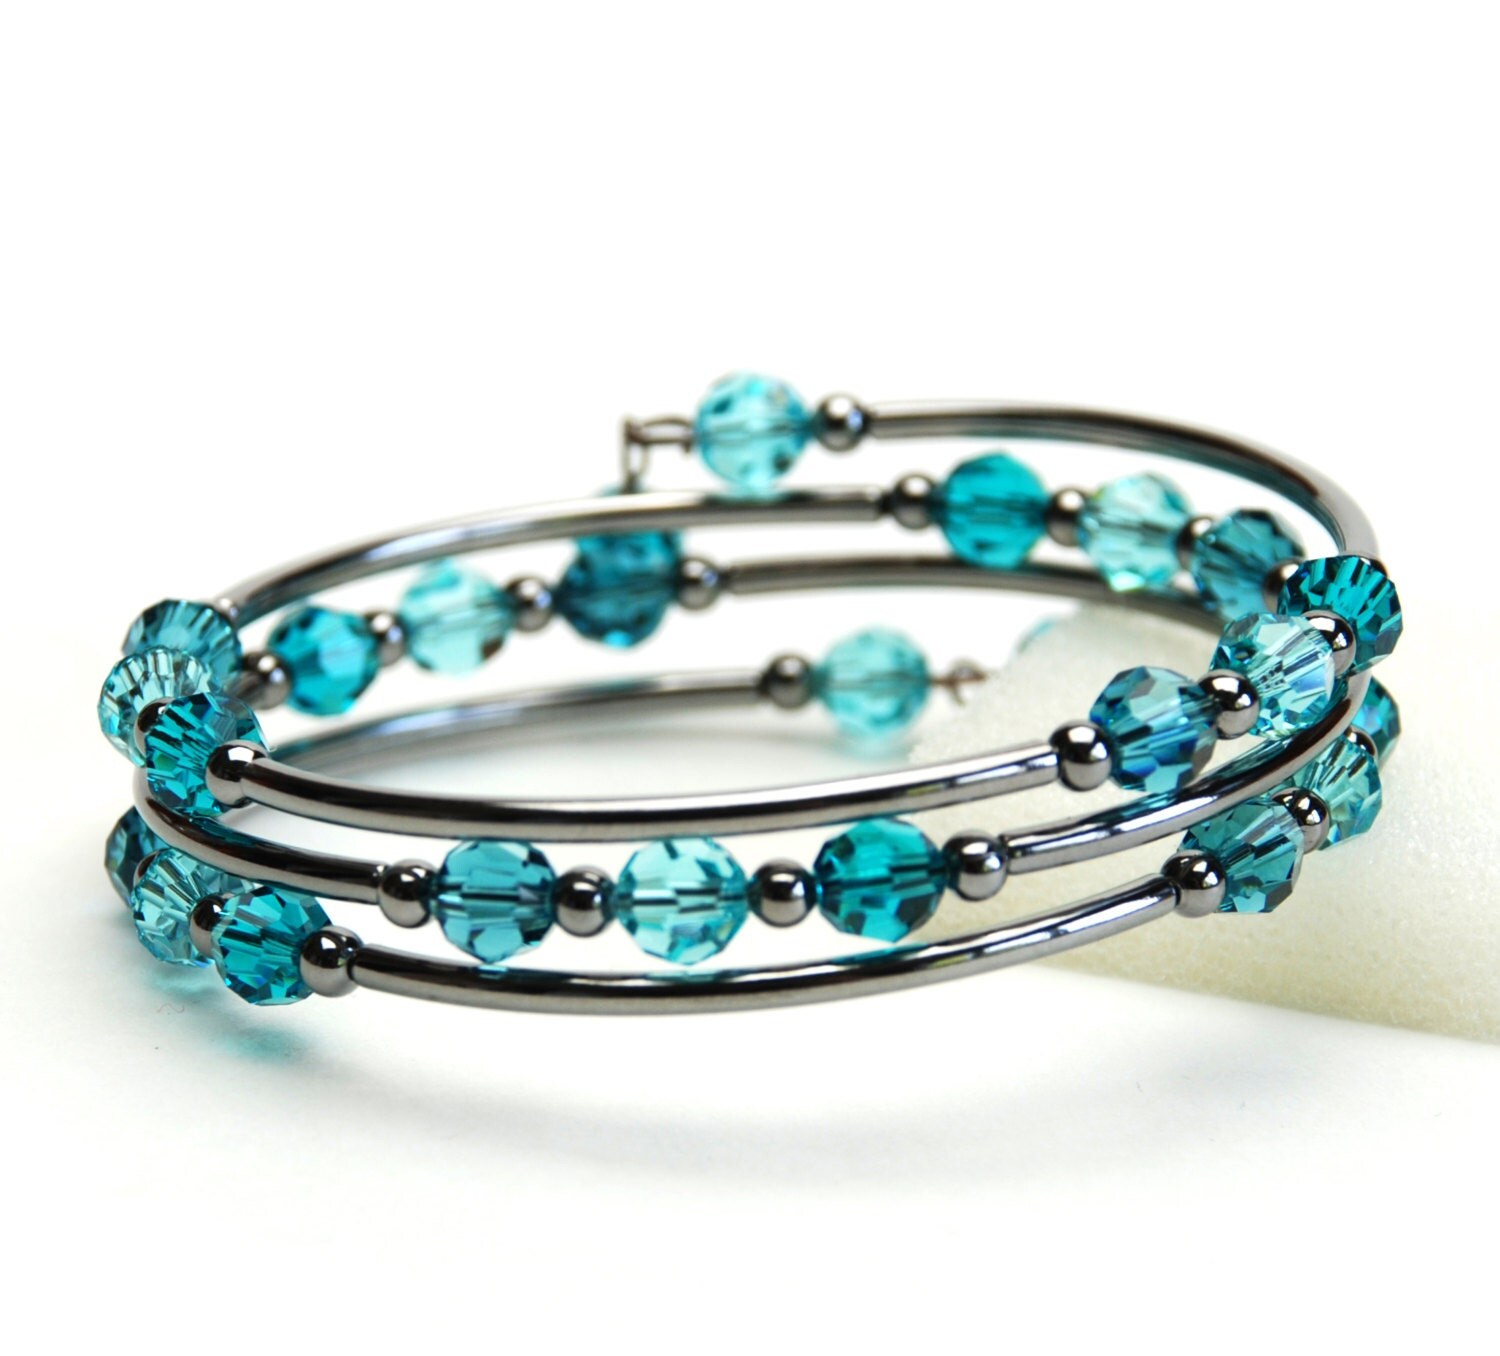 Teal Blue Memory Wire Bracelet Indicolite Blue Zircon Light